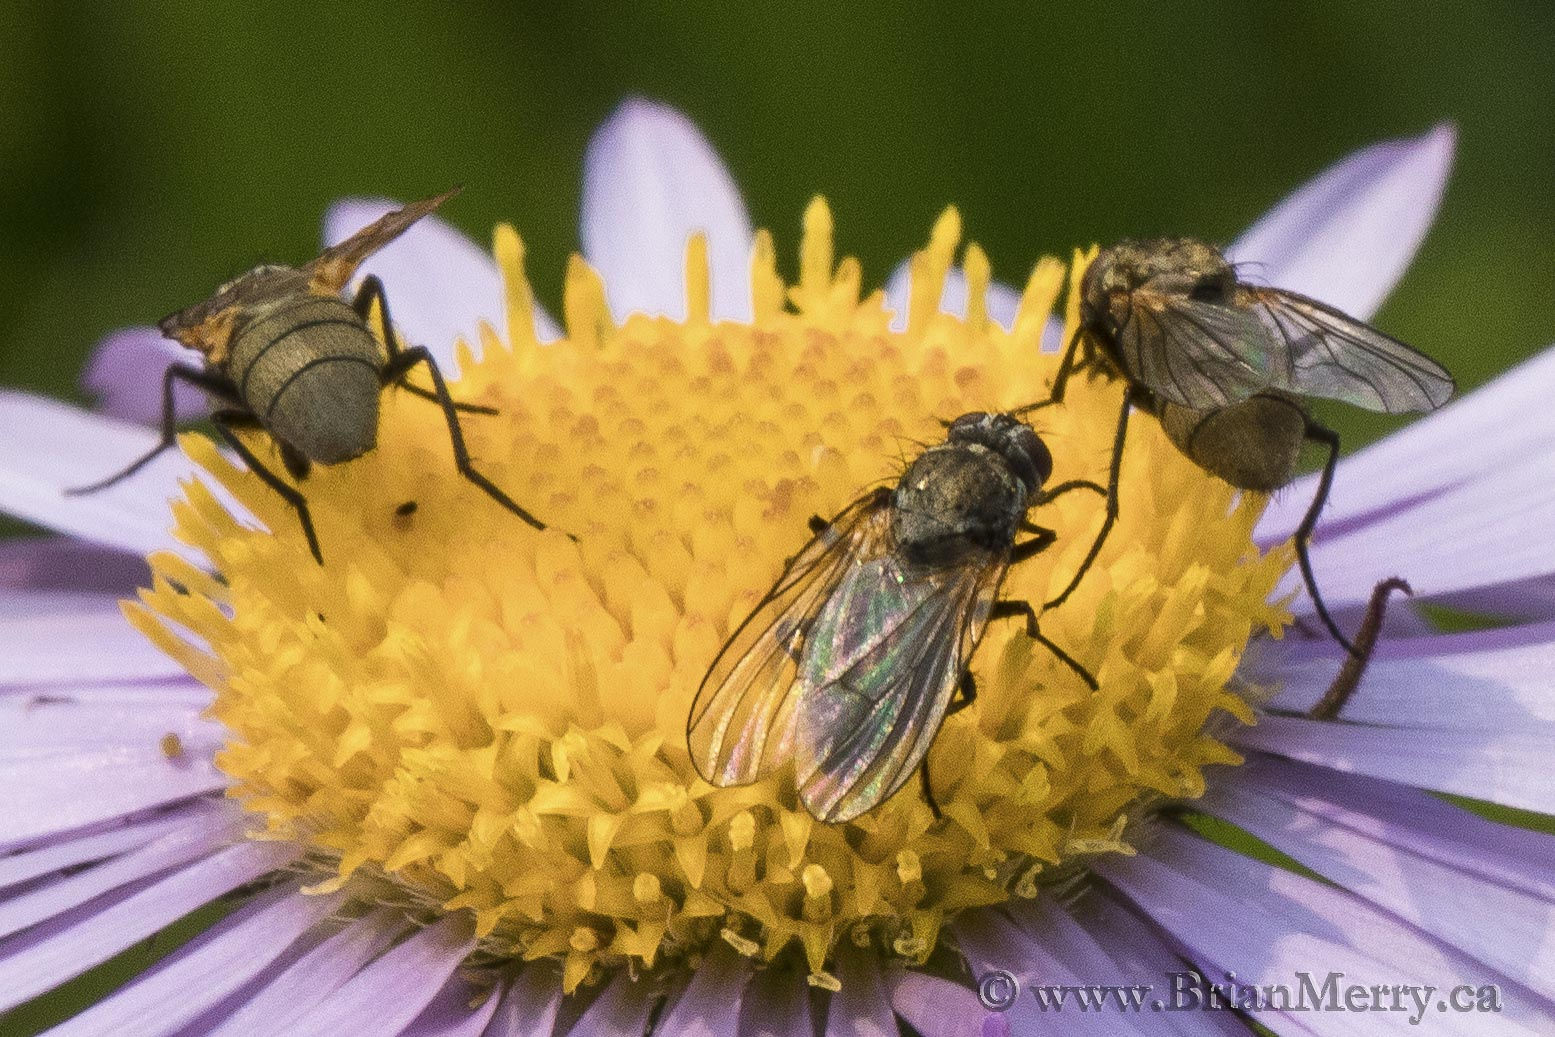 Pollinators at Work.  © www.brianmerry.ca